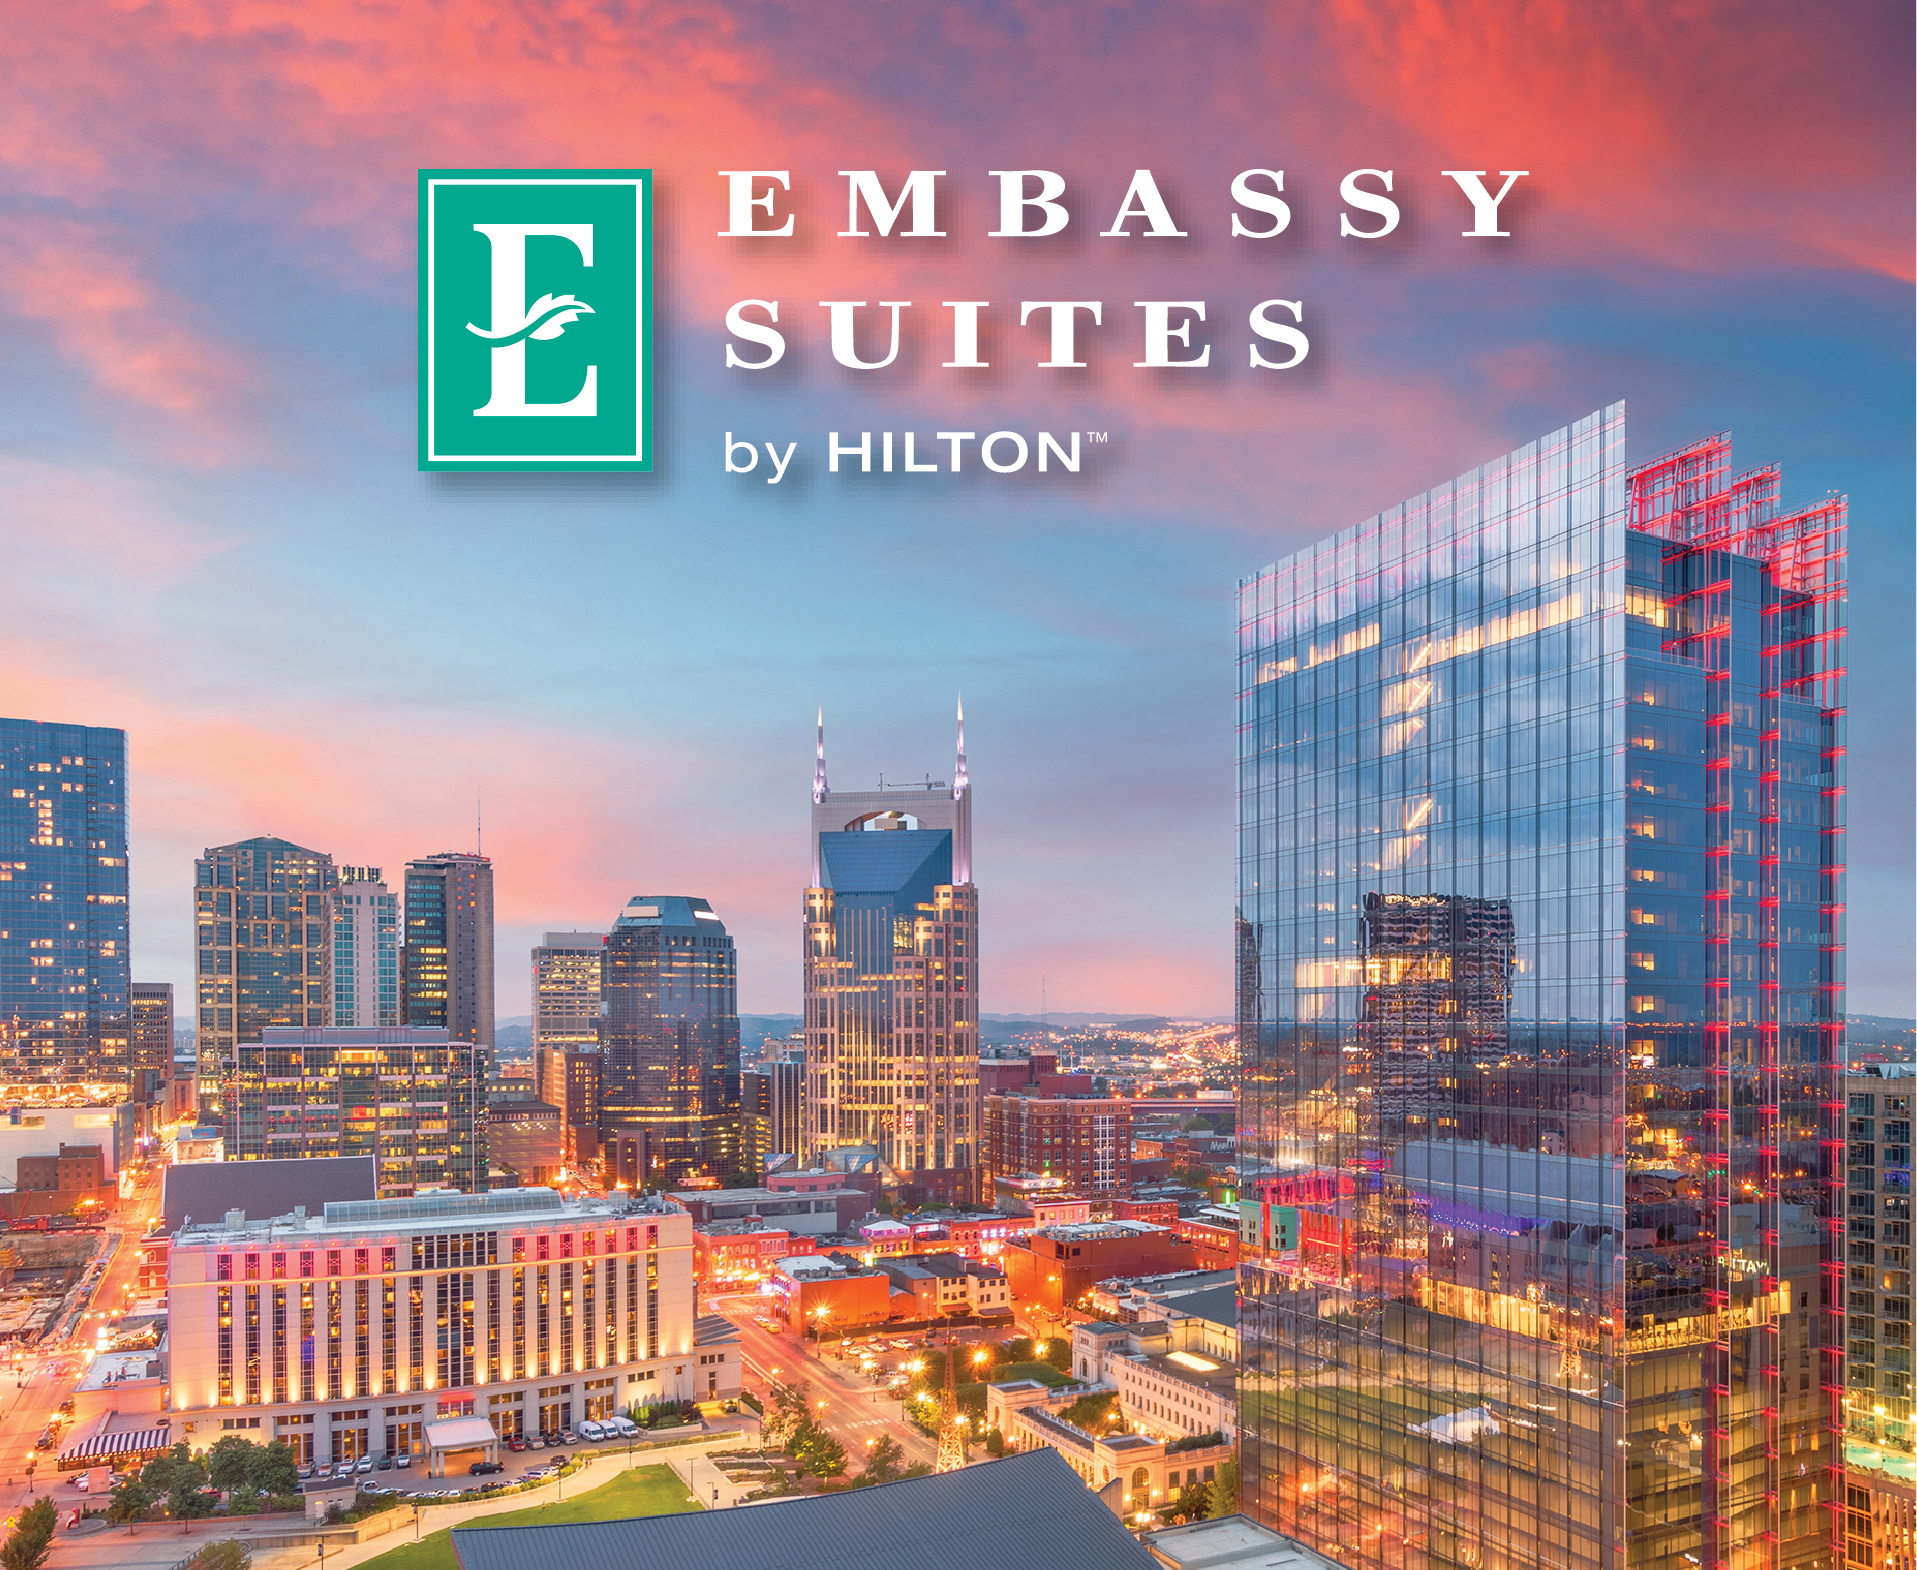 Embassy Suites Portfolio – Dallas, TX – Nashville, TN – New Orleans, LA - High Street and its partners acquired a 3-pack portfolio of Embassy Suites and a boutique annex tower from Felcor Lodging Trust in 2012. The hotels were located in Dallas, New Orleans, and the Nashville airport and contained a total of 904 rooms. With the introduction of a new management team (Aimbridge Hospitality) and thoughtful capital investments, High Street brought the hotels to a higher quality tier. High Street exited these investments from 2015-2018 through four separate transactions.